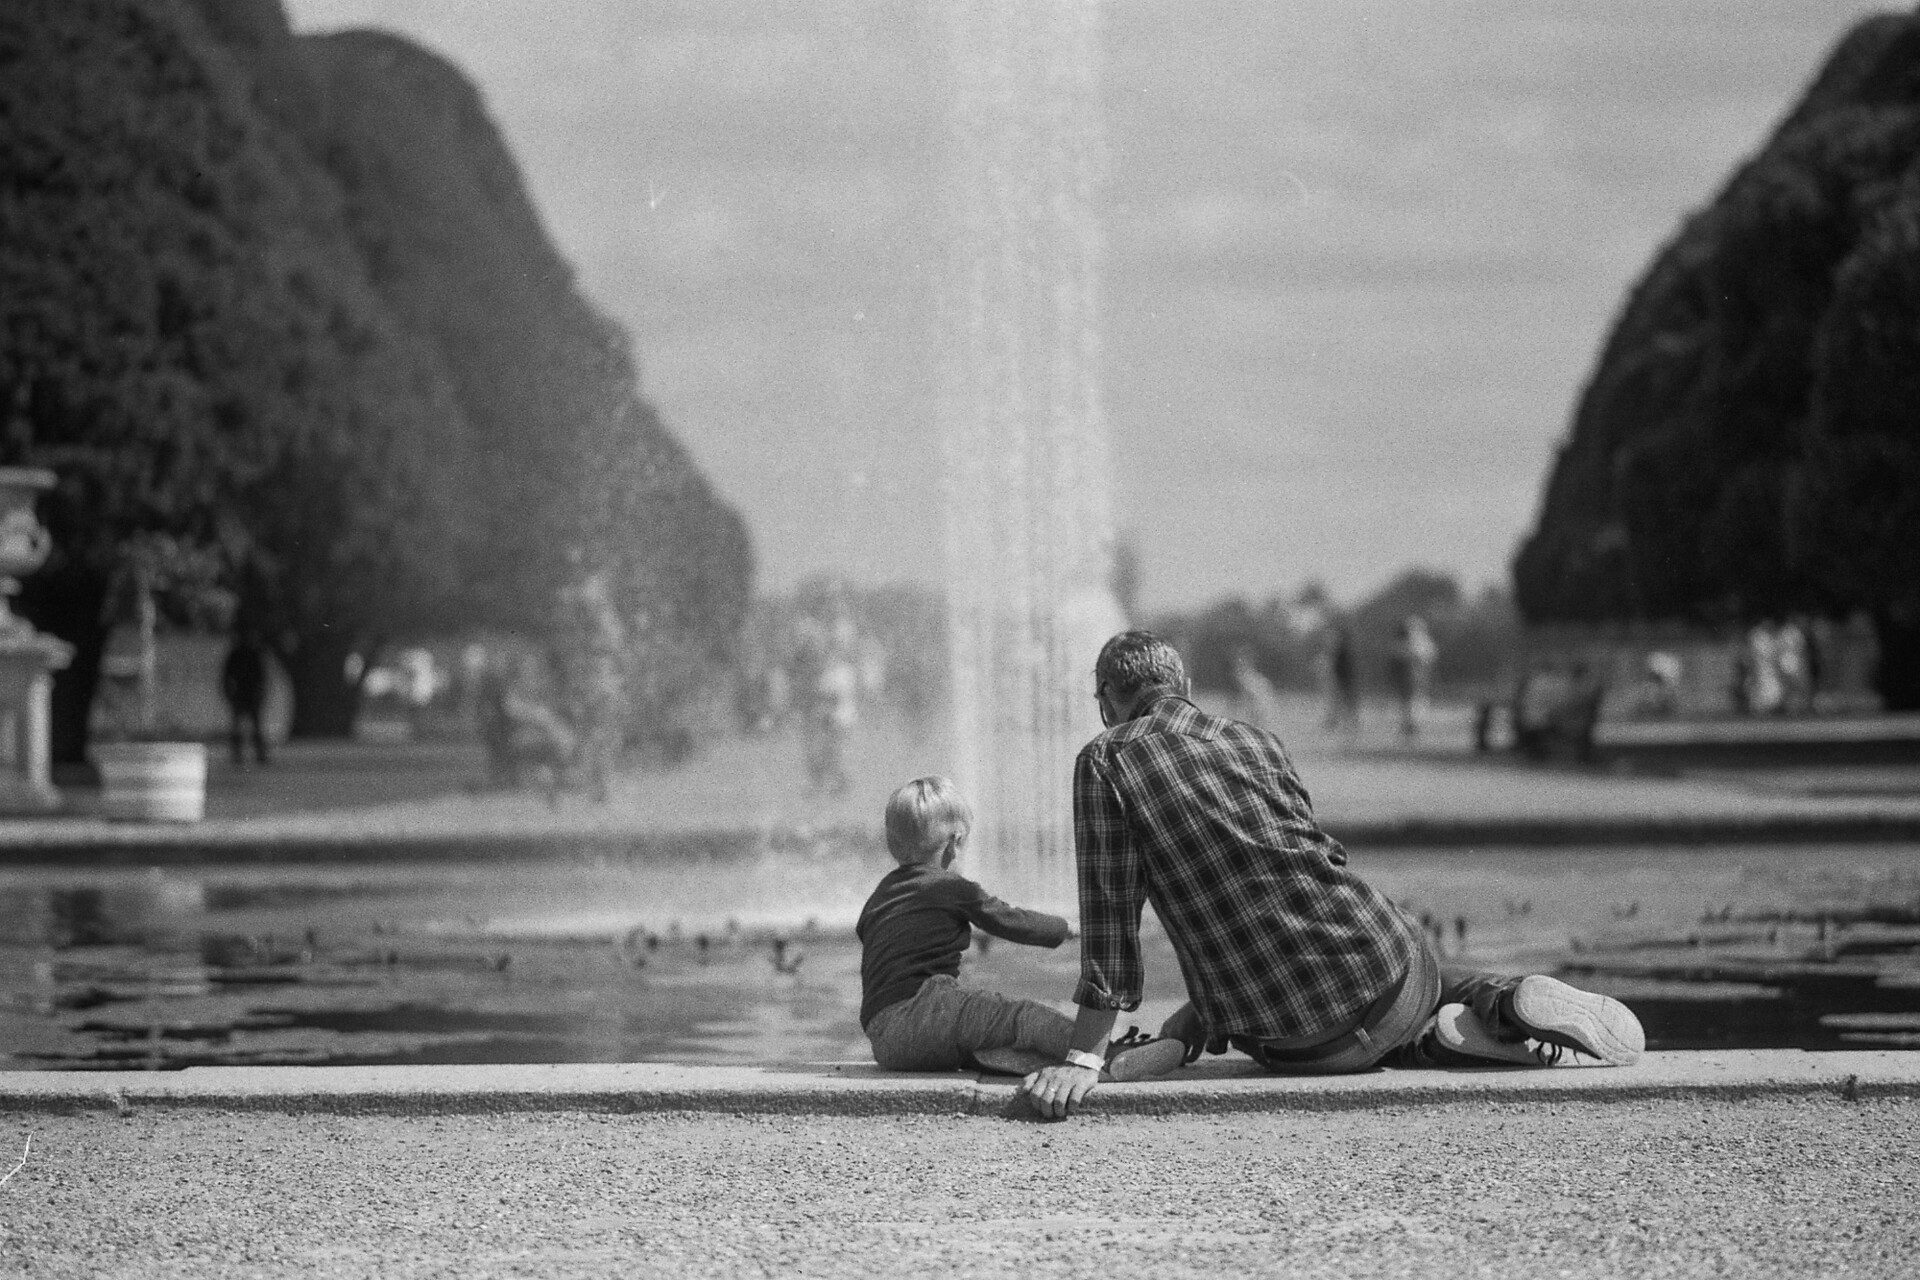 @calor_gas_terry · 18h Replying to  @ILFORDPhoto Here's my #ilfordphoto #fridayfavourites photograph of a quiet father and son moment at Hampton Court Palace, captured on FP4+ #filmfathers